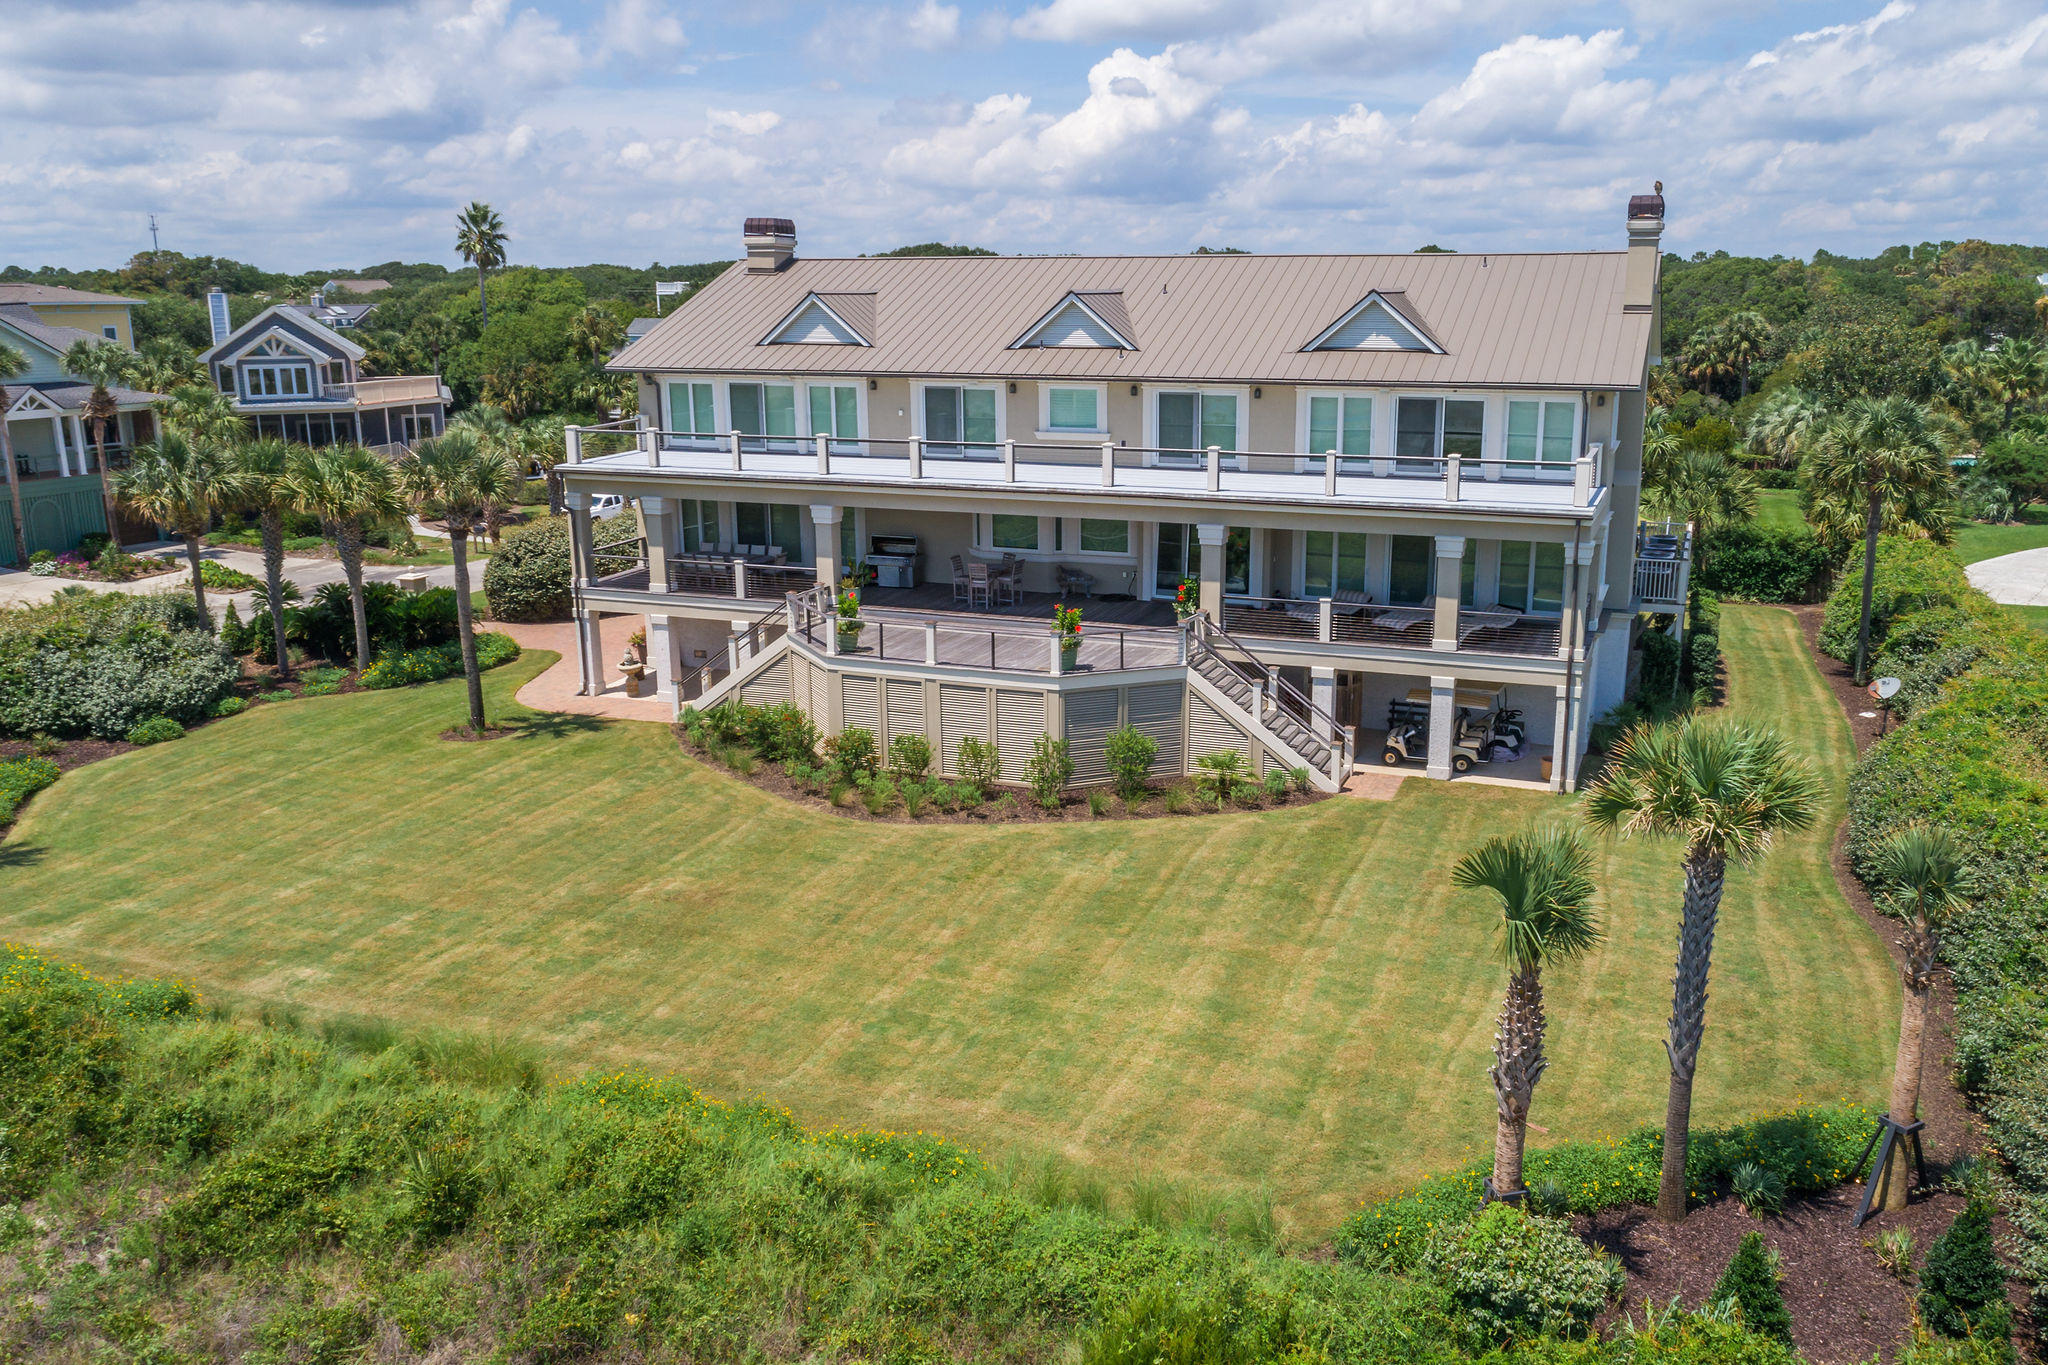 Isle of Palms Homes For Sale - 2 50th, Isle of Palms, SC - 18